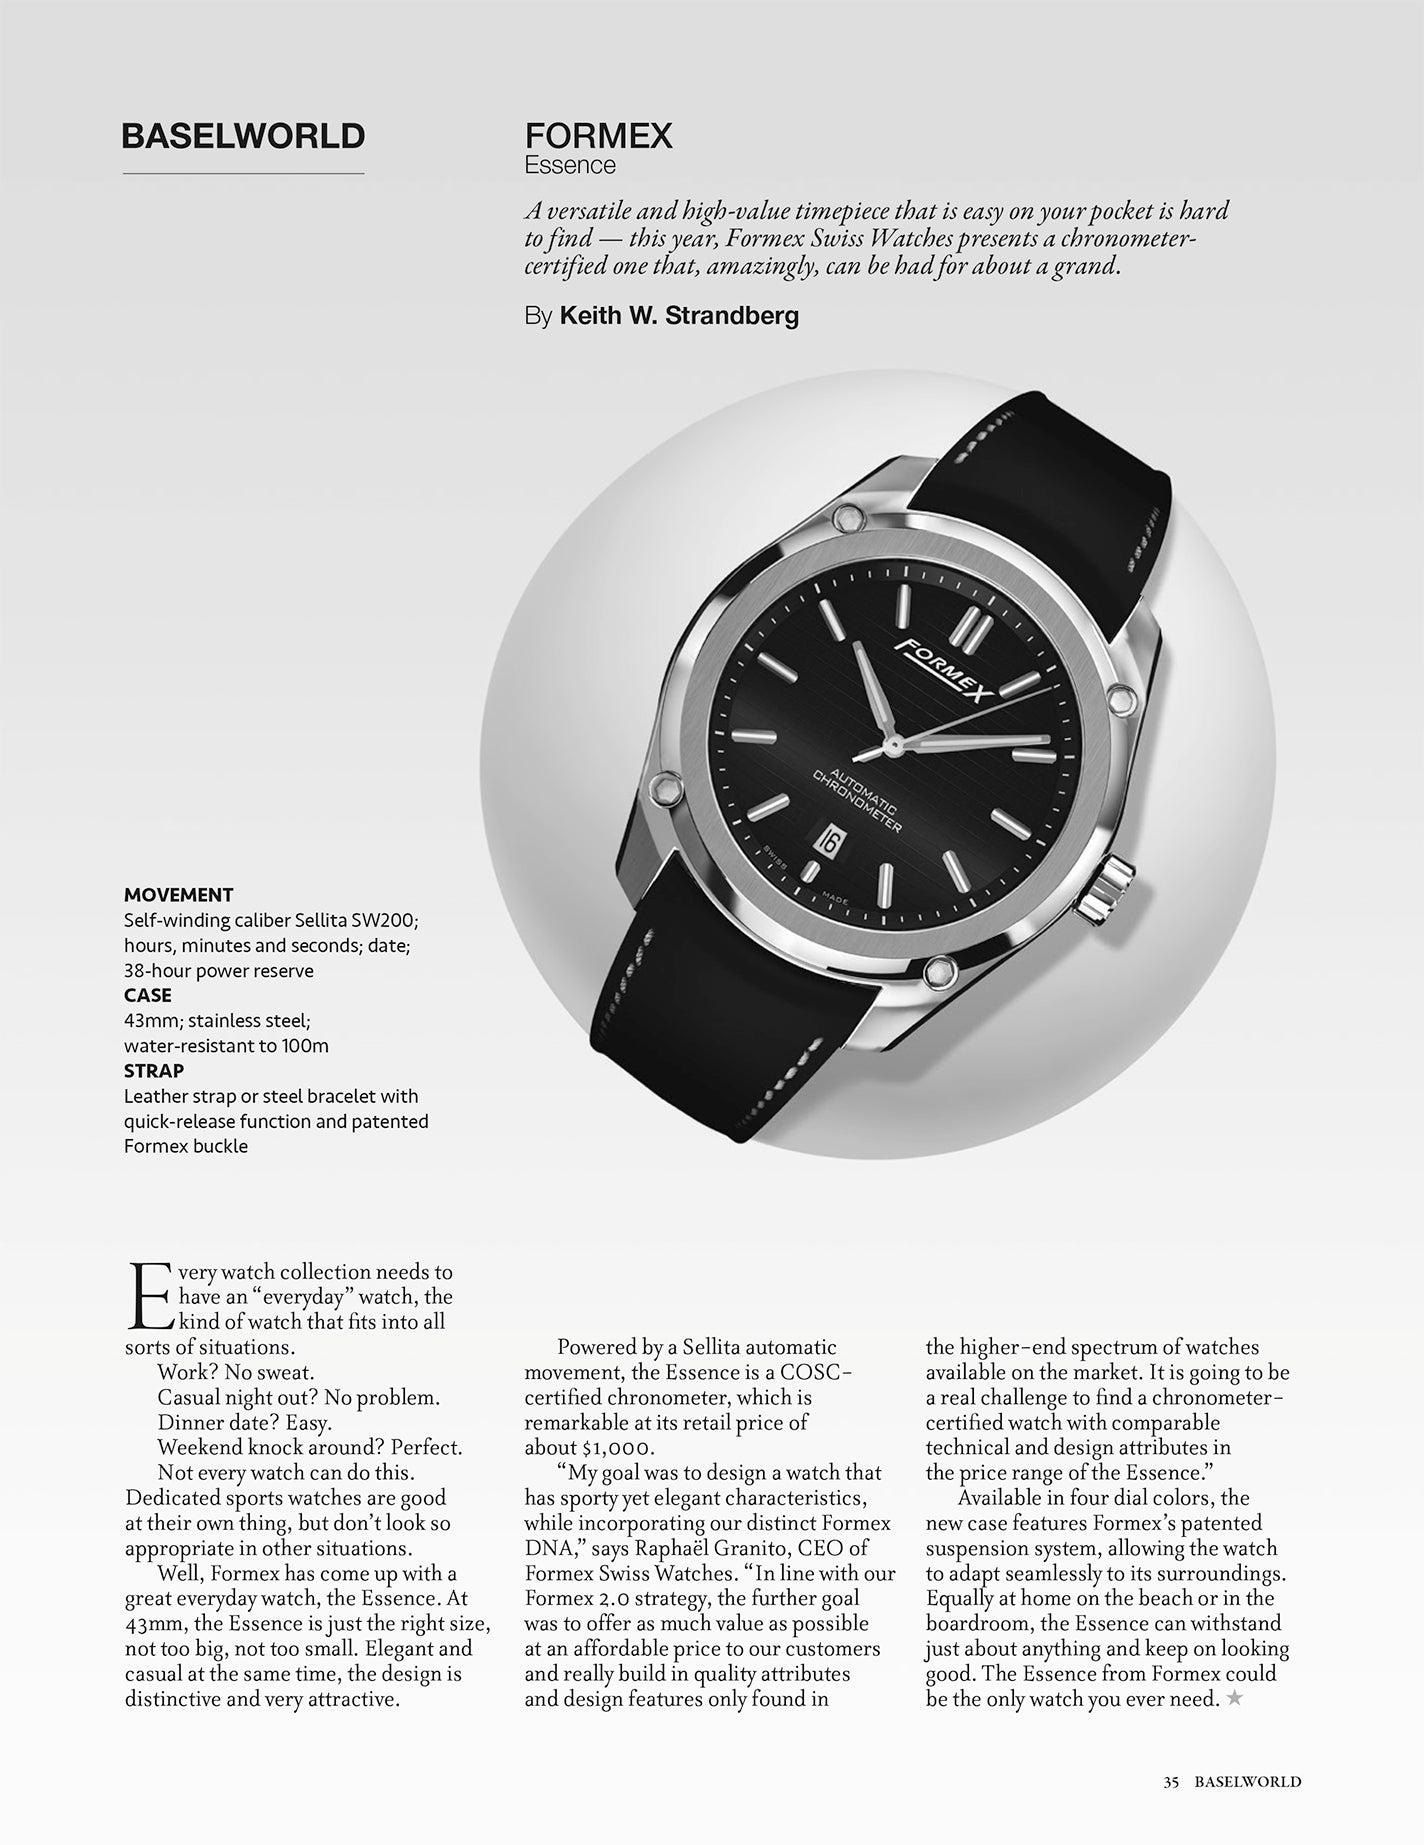 REVOLUTION: Formex Essence Automatic Chronometer